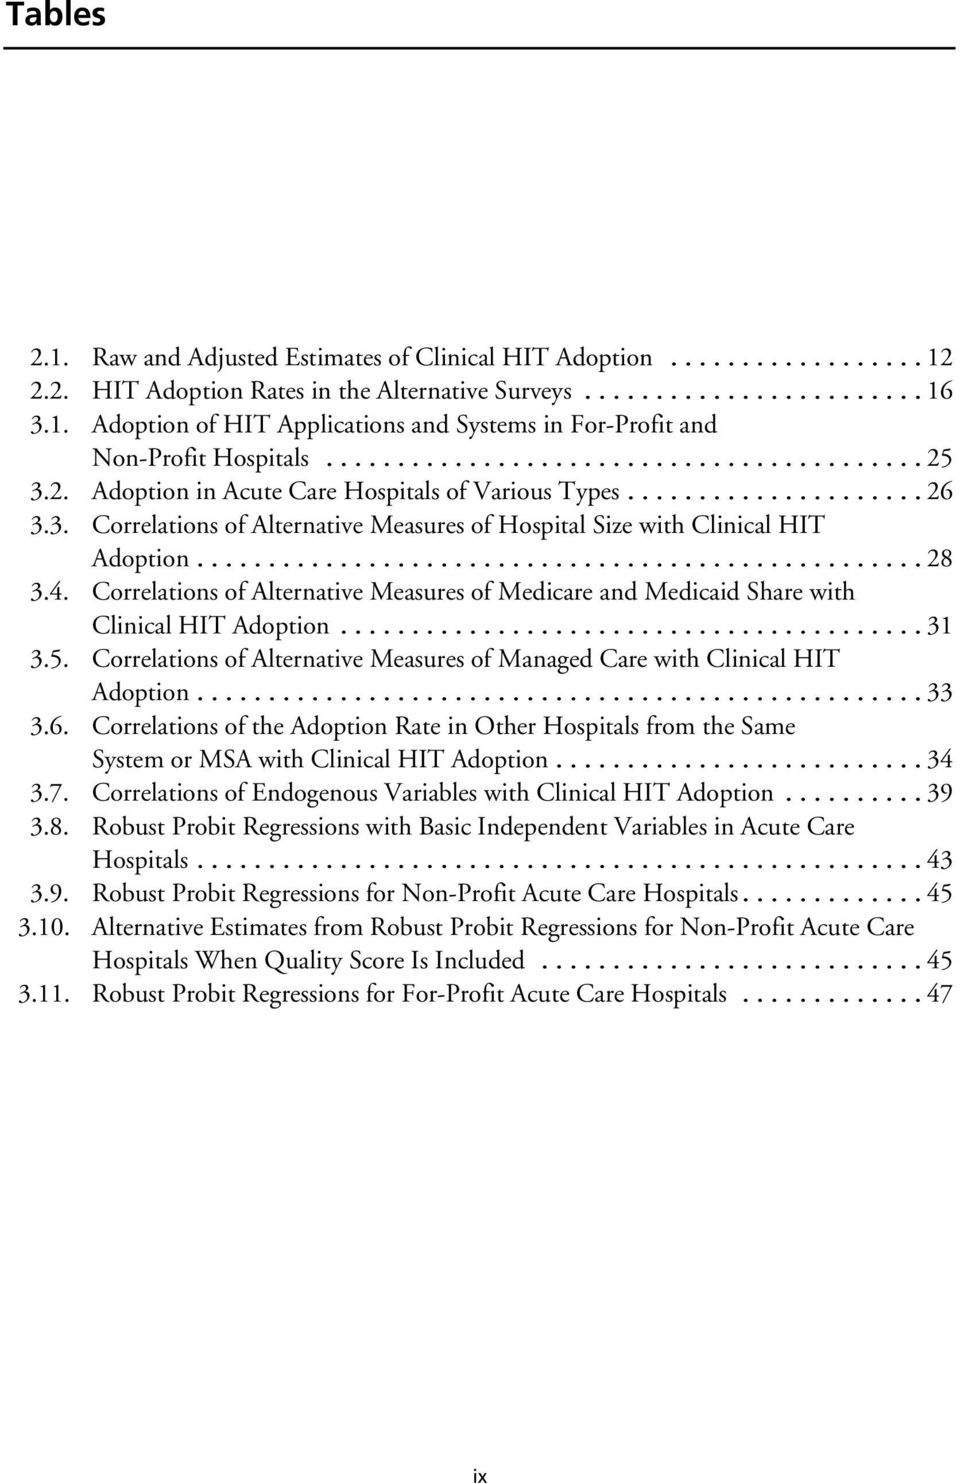 Correlations of Alternative Measures of Medicare and Medicaid Share with Clinical HIT Adoption...31 3.5. Correlations of Alternative Measures of Managed Care with Clinical HIT Adoption...33 3.6.